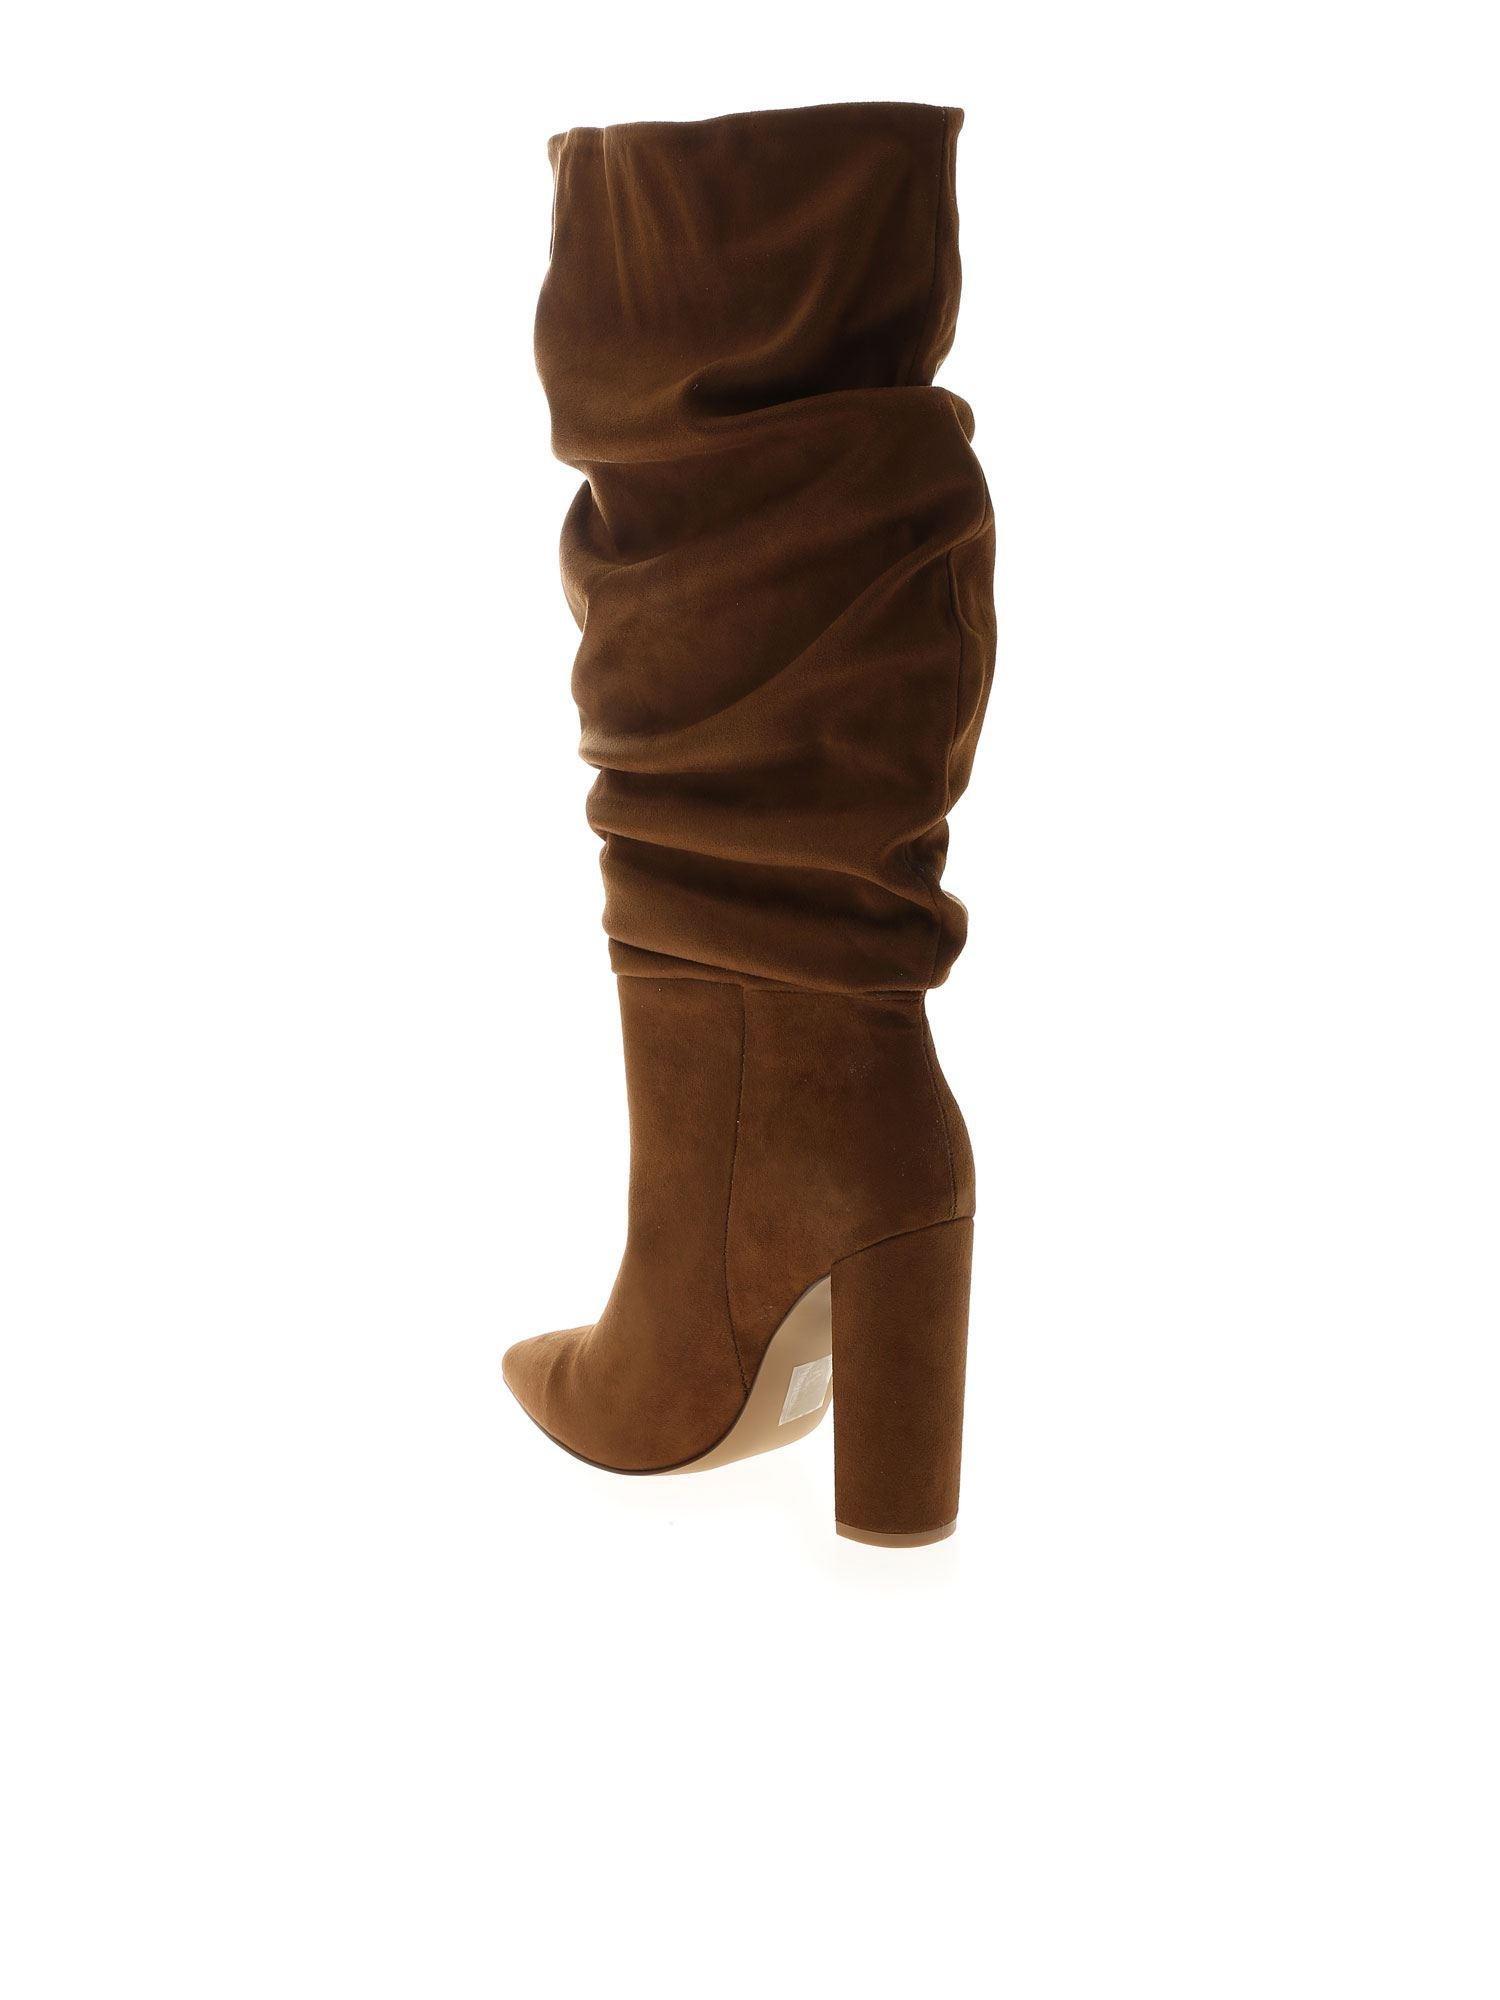 Steve Madden Slouch Boots In Brown - Lyst